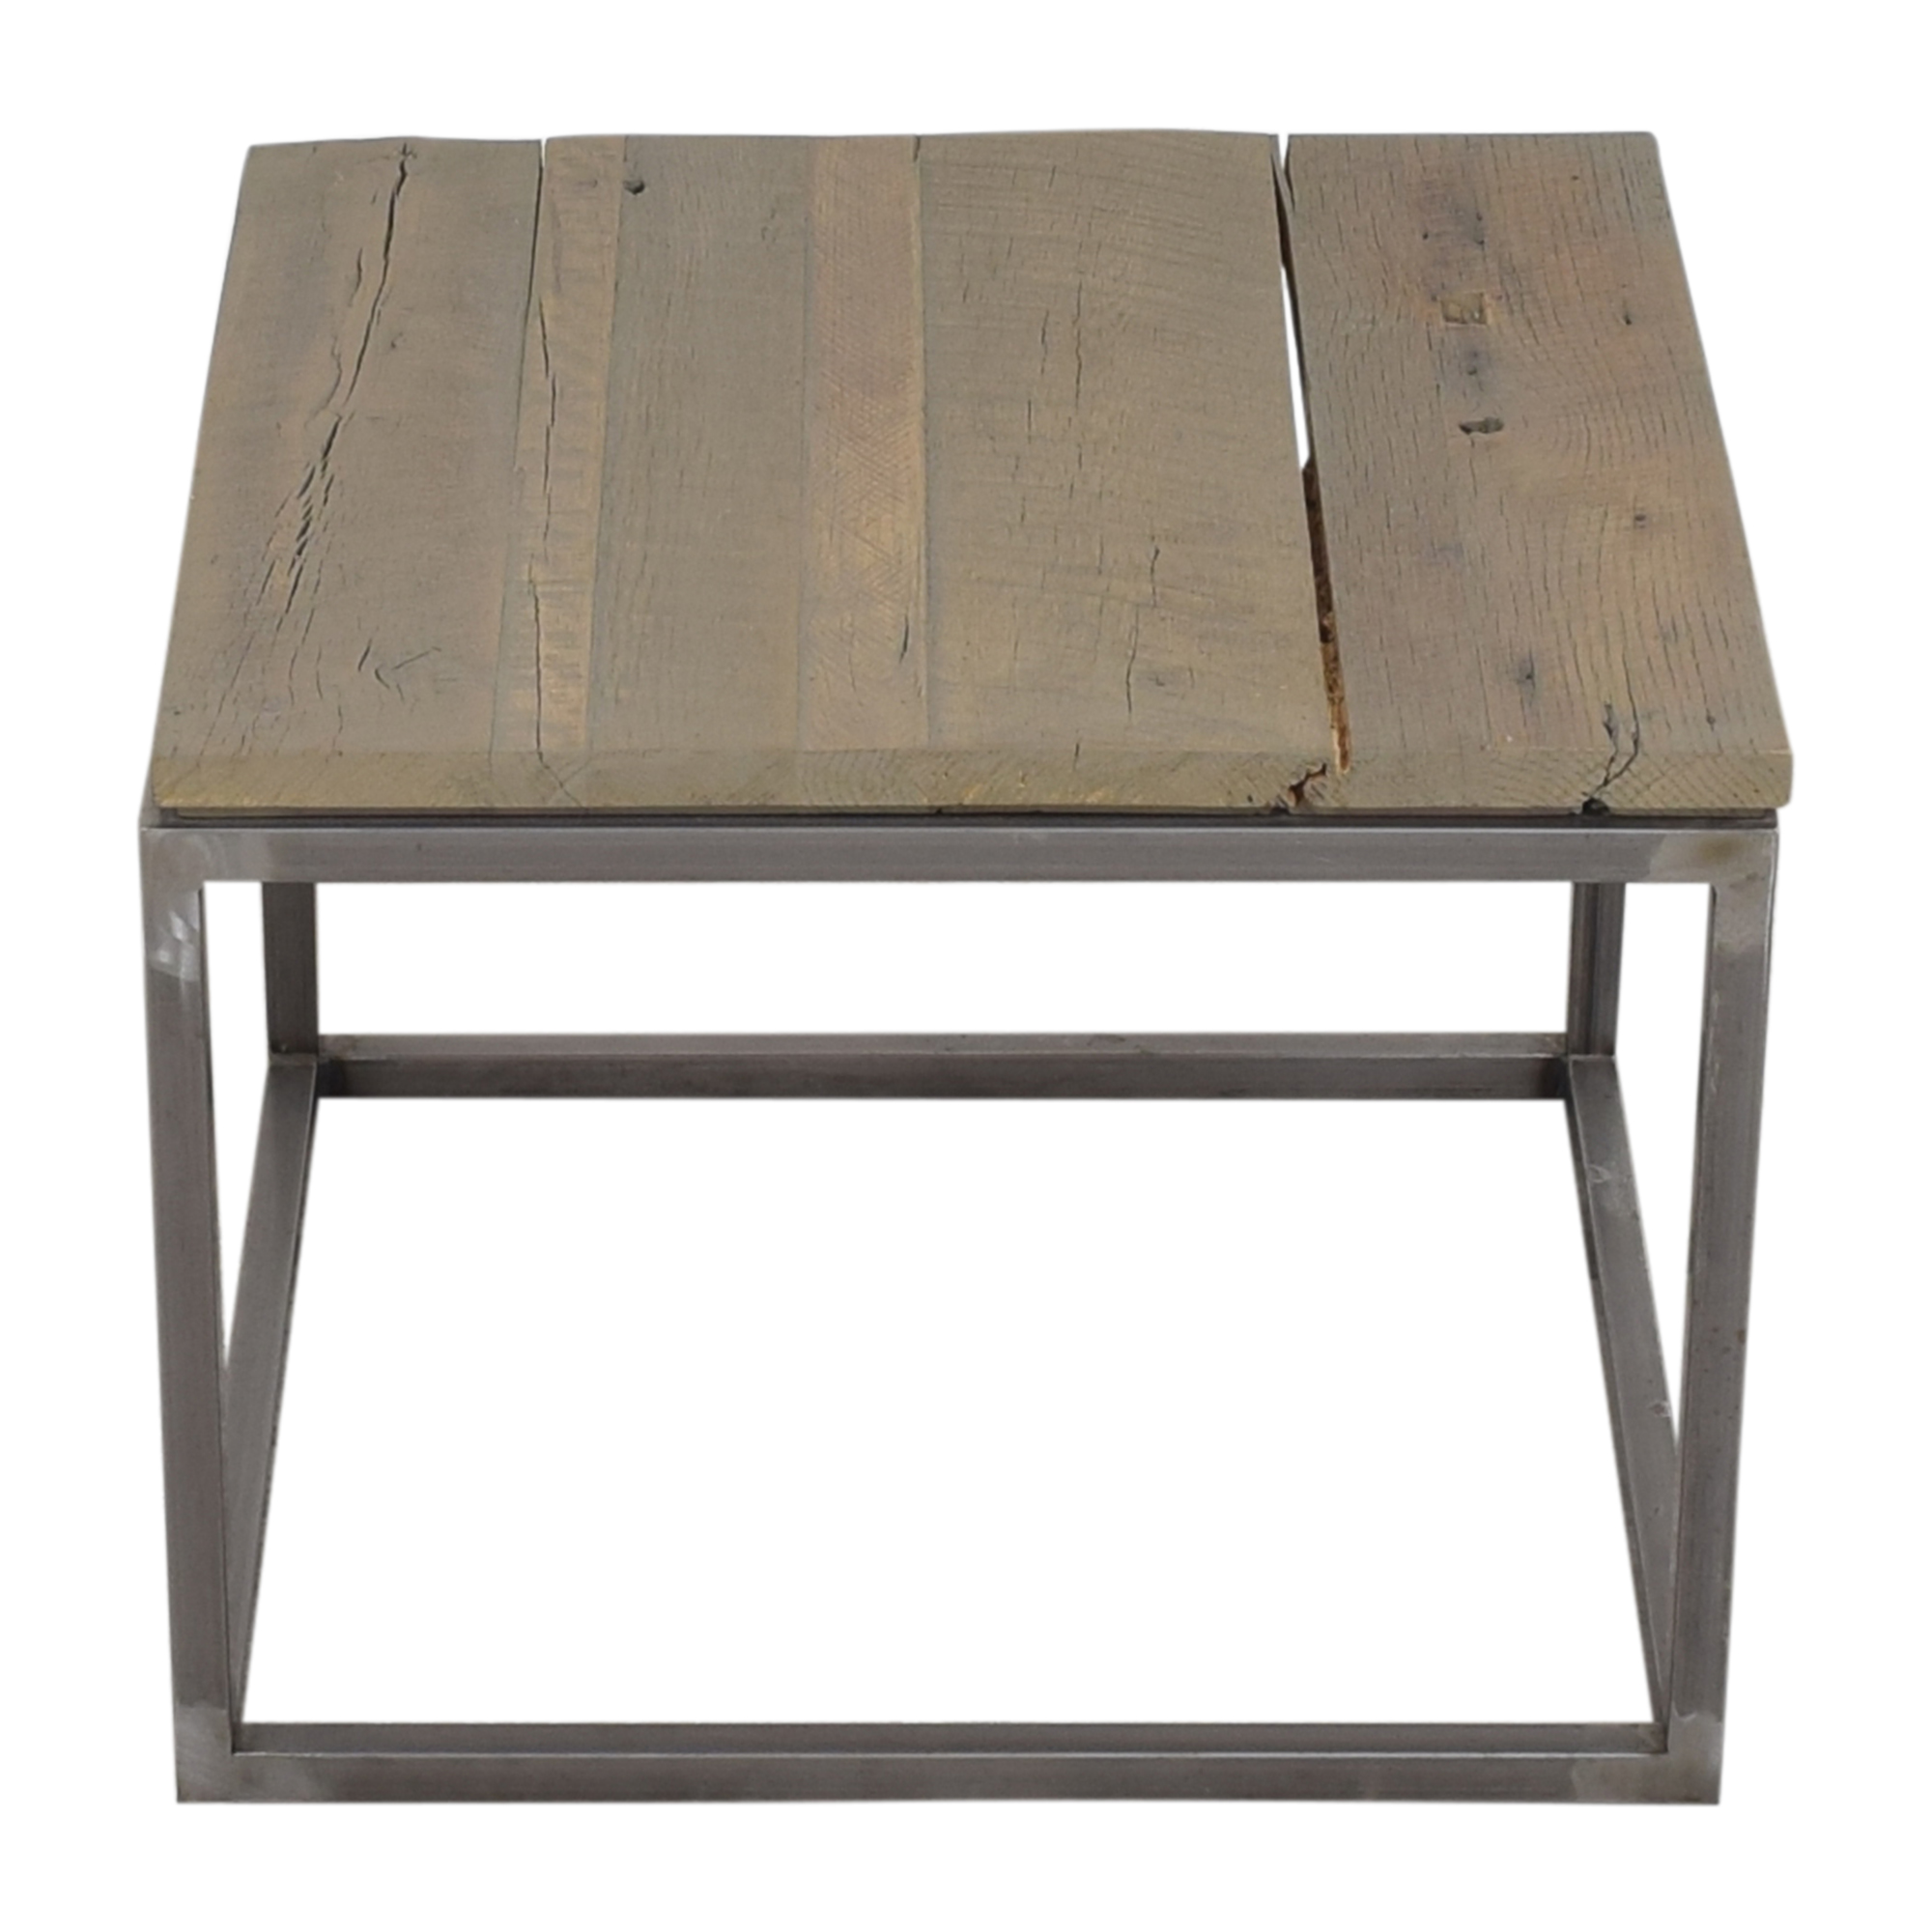 Mitchell Gold + Bob Williams Mitchell Gold + Bob Williams Reclaimed Side Table price